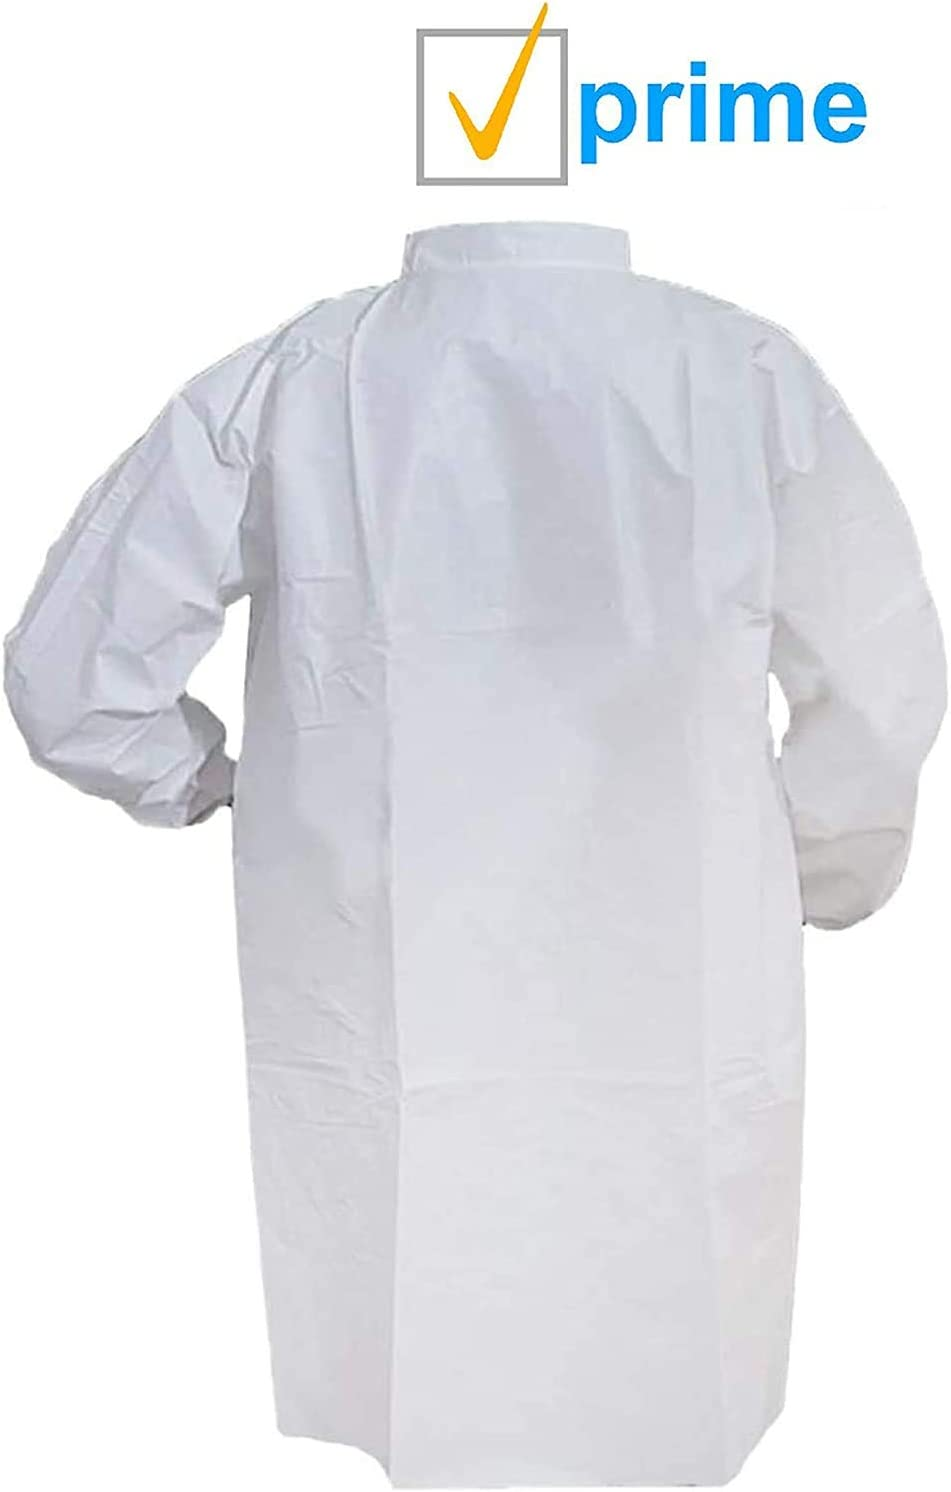 with Loop Fastener Adult Disposable SMS Coat No Pockets Non-Sterile Unisex Industrial Clothing. X-Large White Coat with Long Sleeves and Elastic Wrists AMZ Lab Coat 43 x 55